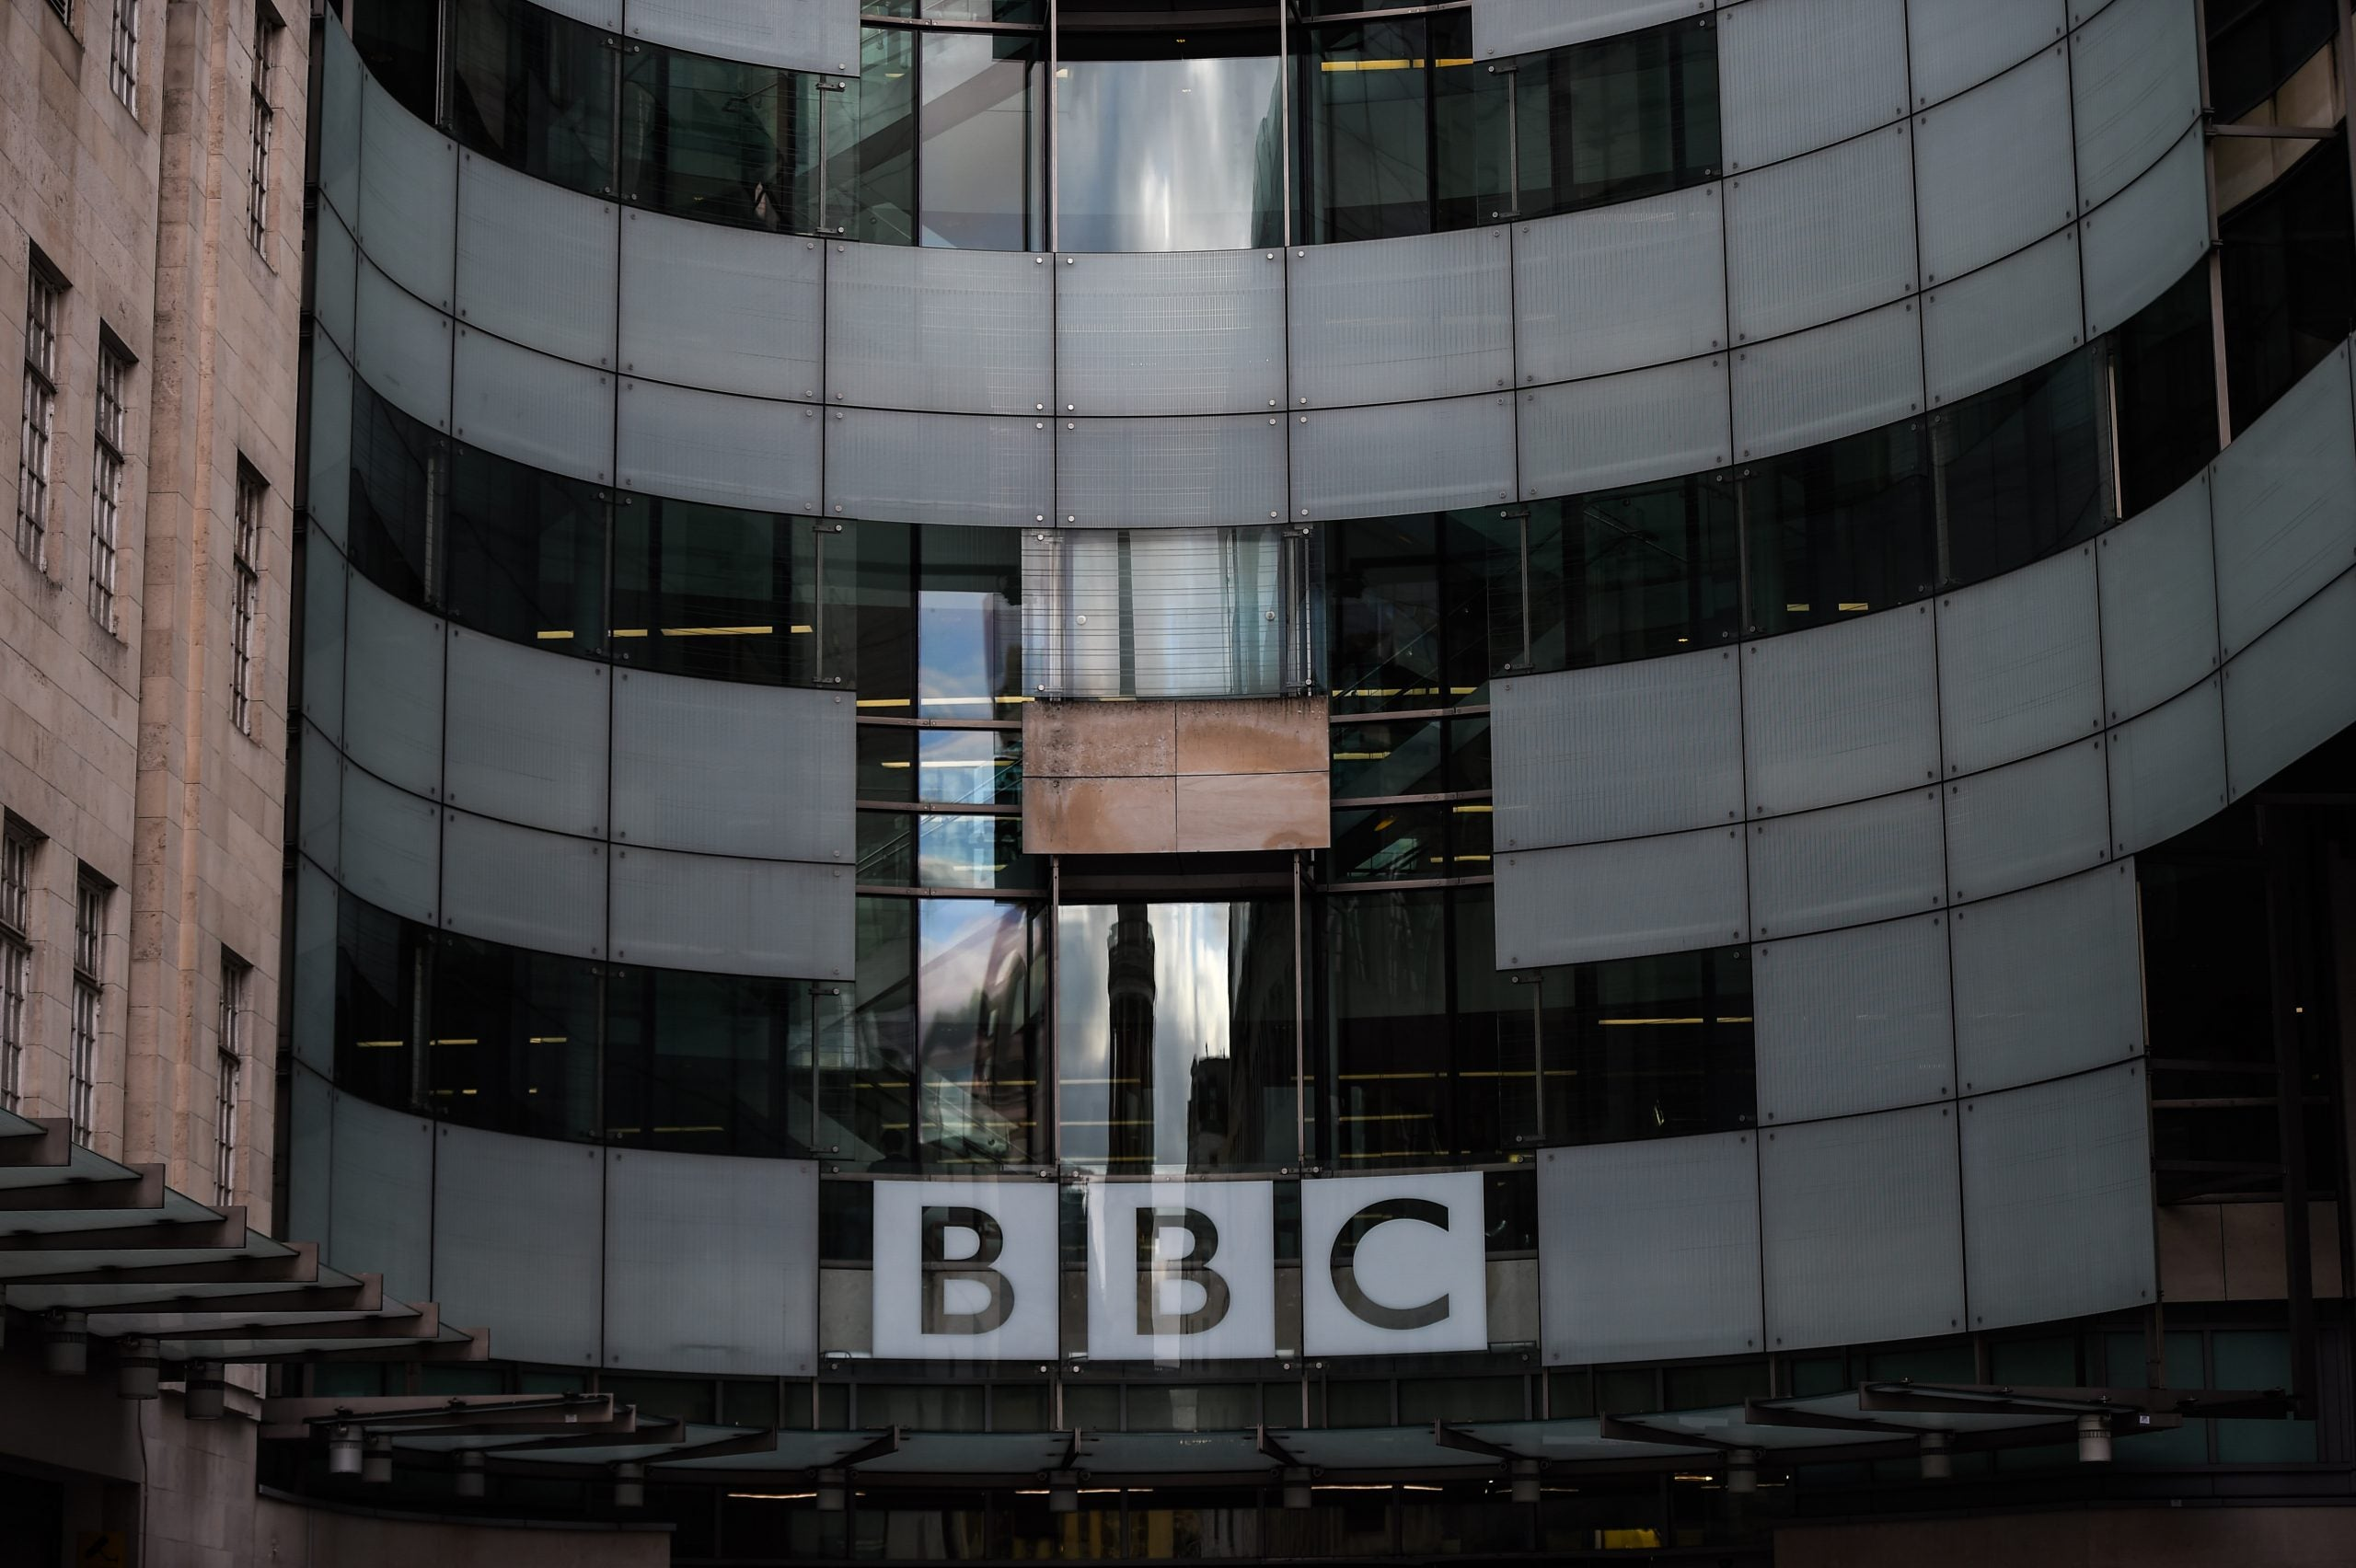 The coronavirus crisis has shown why the BBC is so crucial to protect